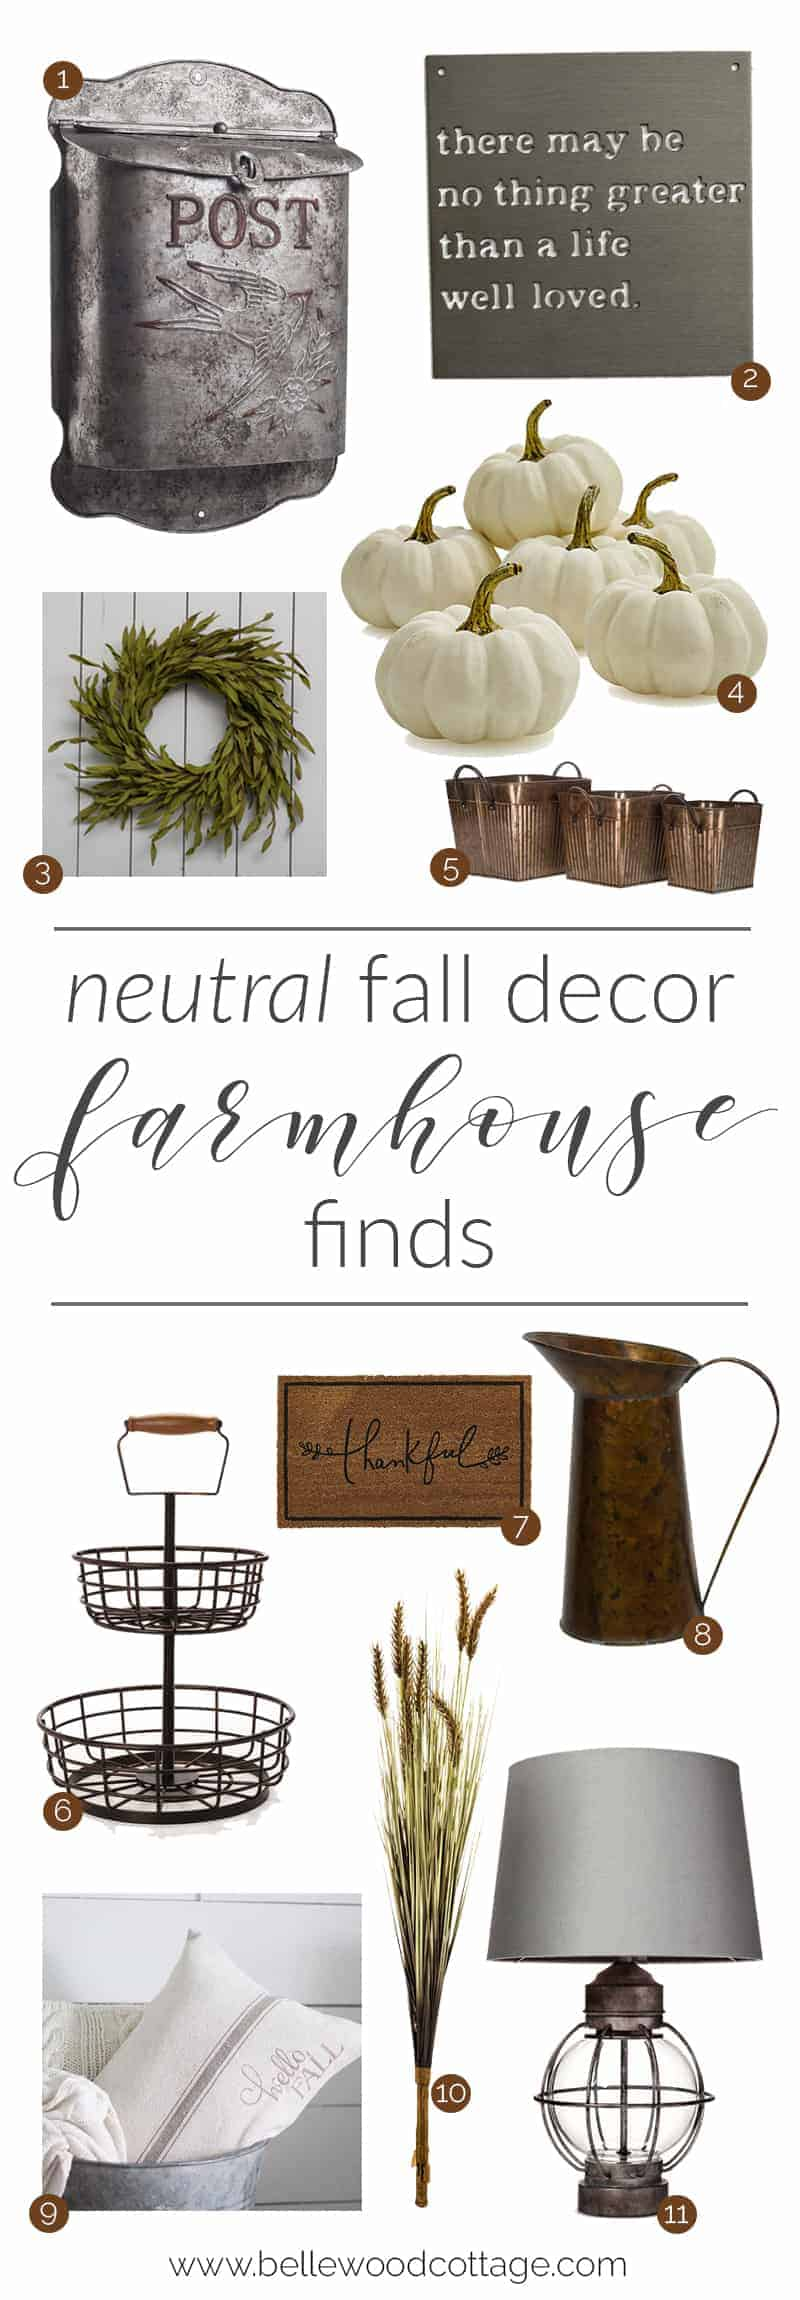 Neutral Fall Farmhouse Decor